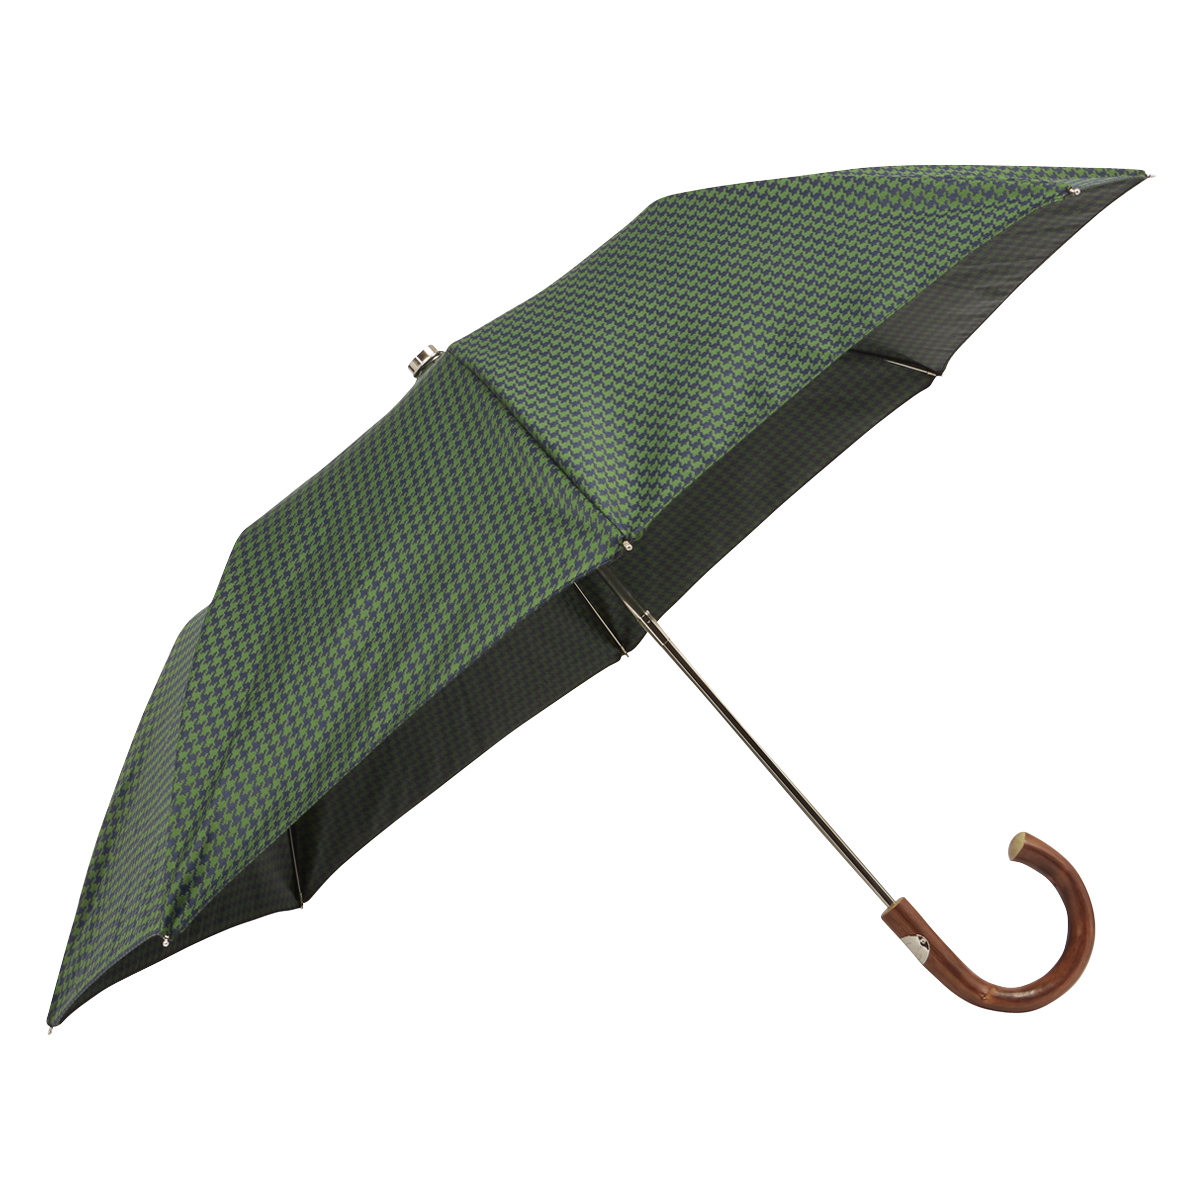 Green and Blue Houndstooth and Wood Folding Umbrella